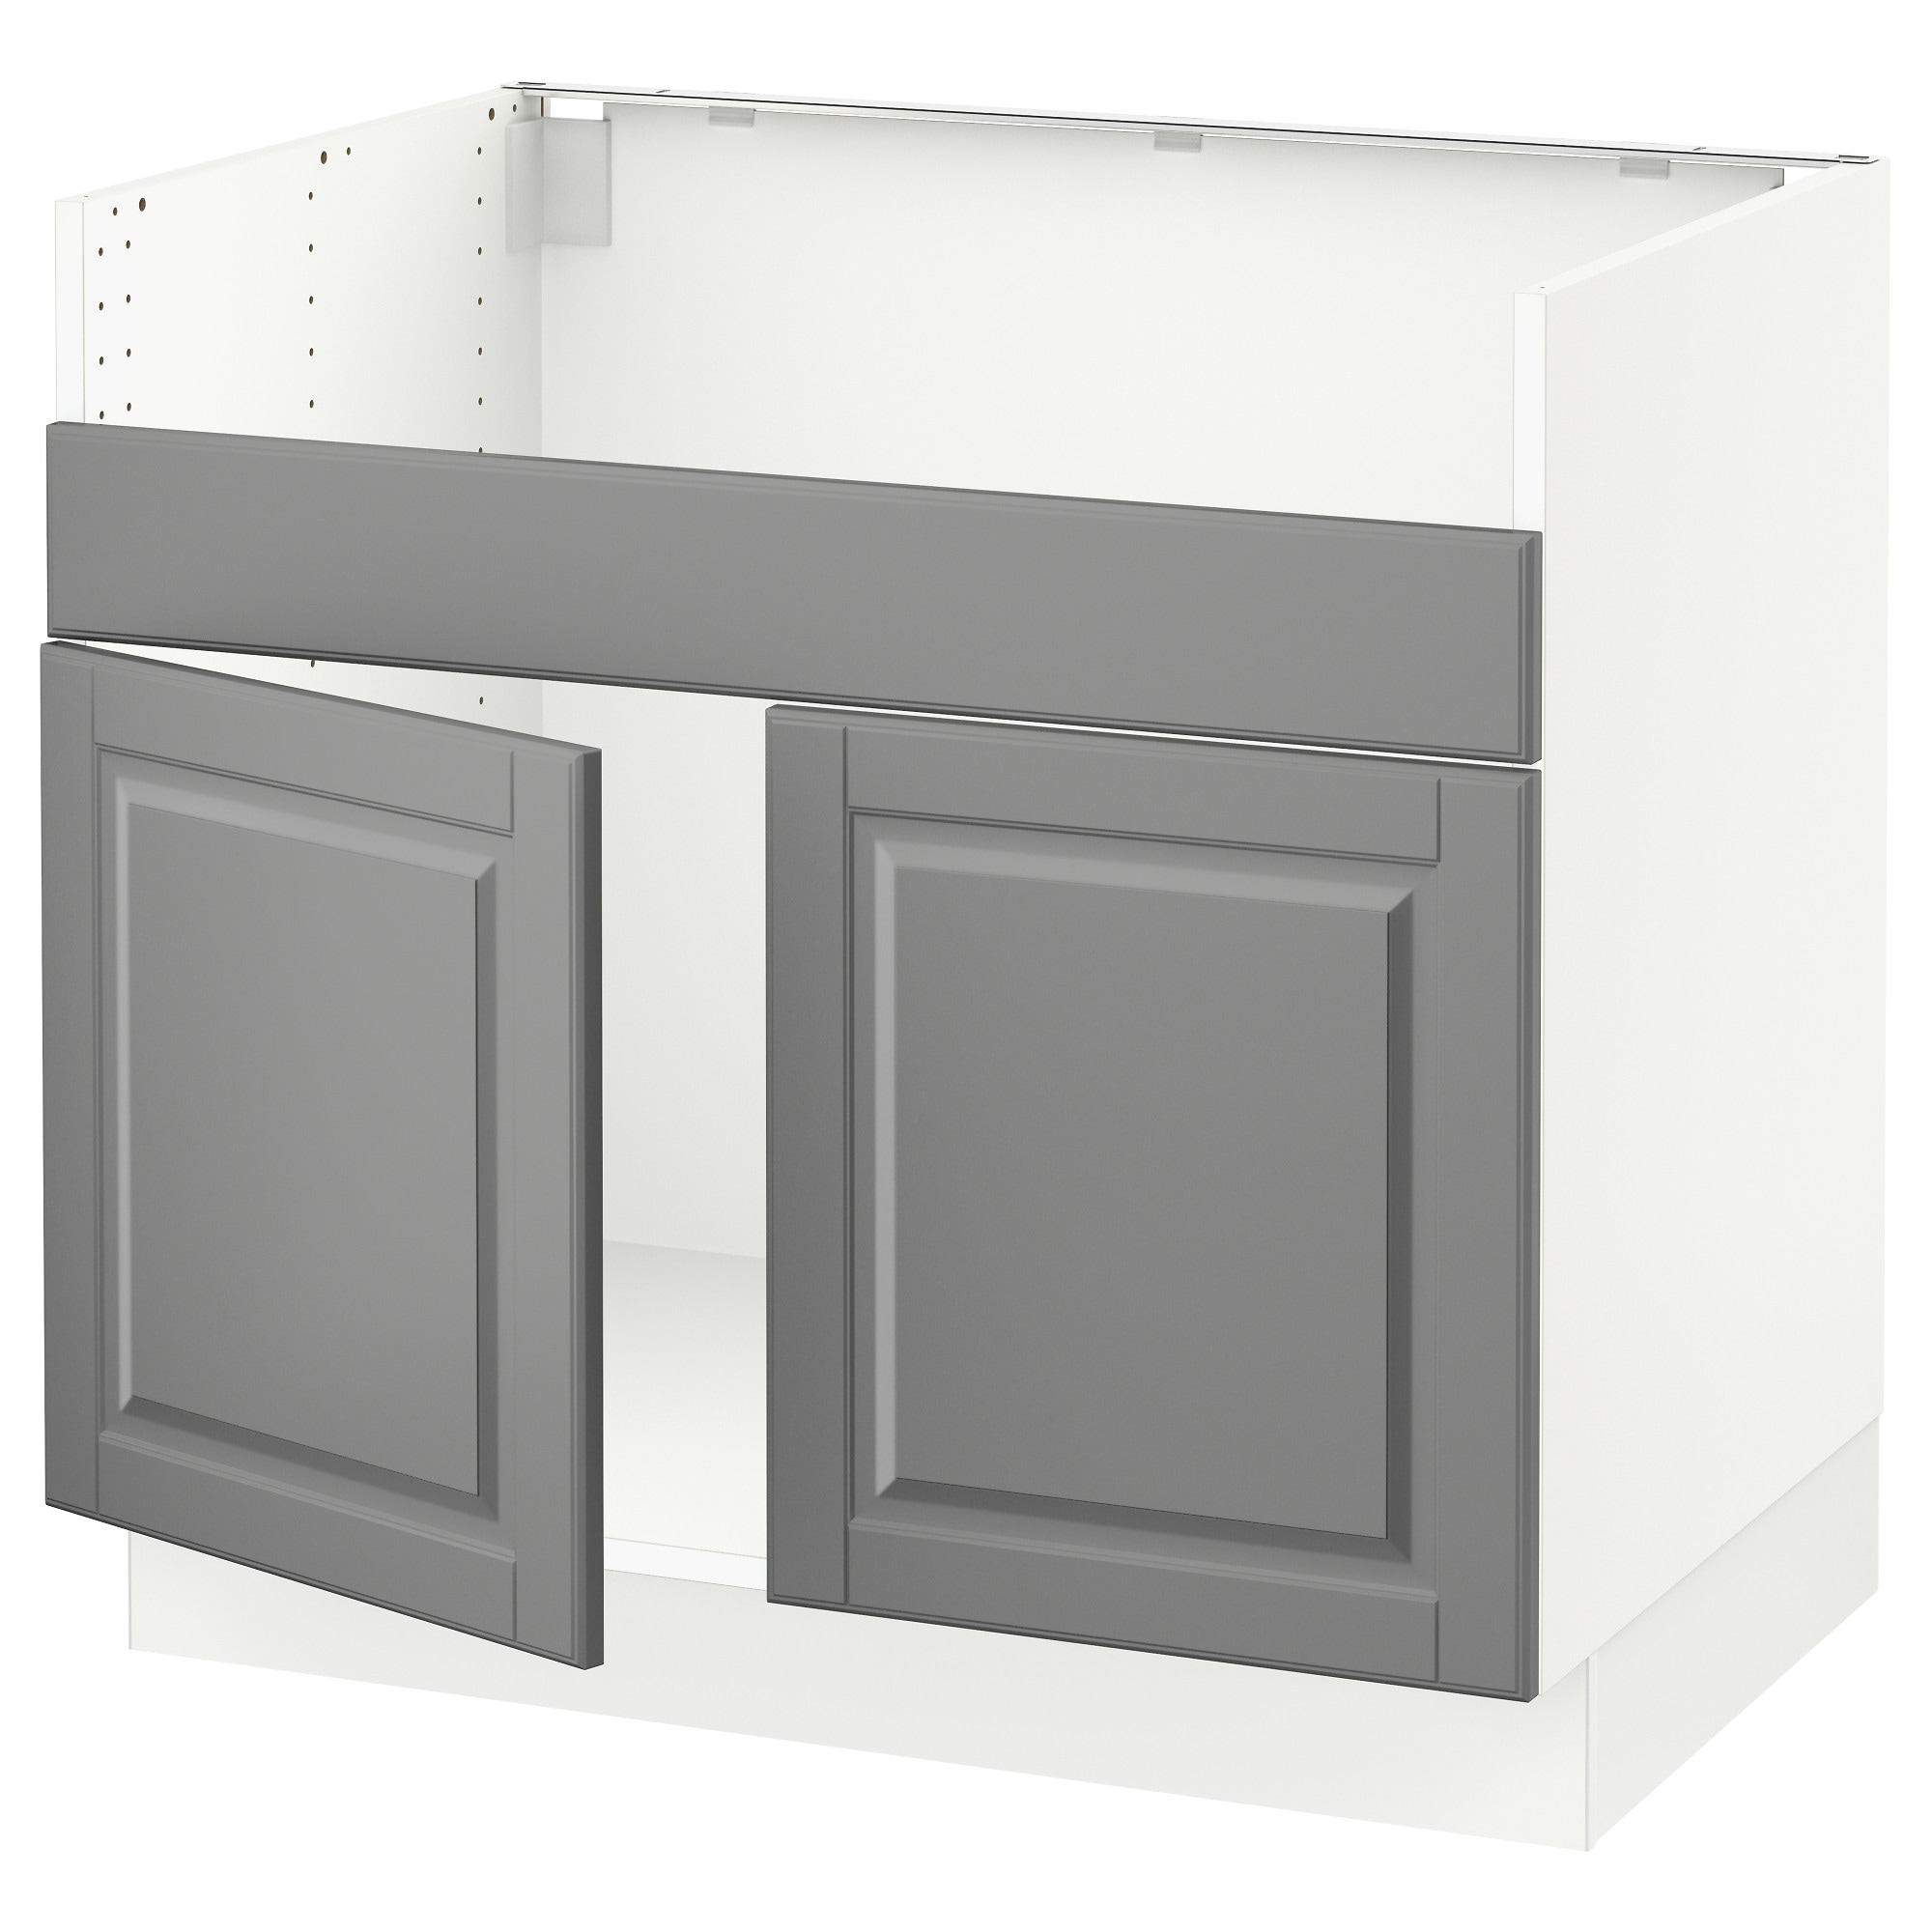 SEKTION base cabinet f DOMSJ  2 bowl sink  white  Bodbyn gray Width. Base Cabinets   SEKTION system   IKEA